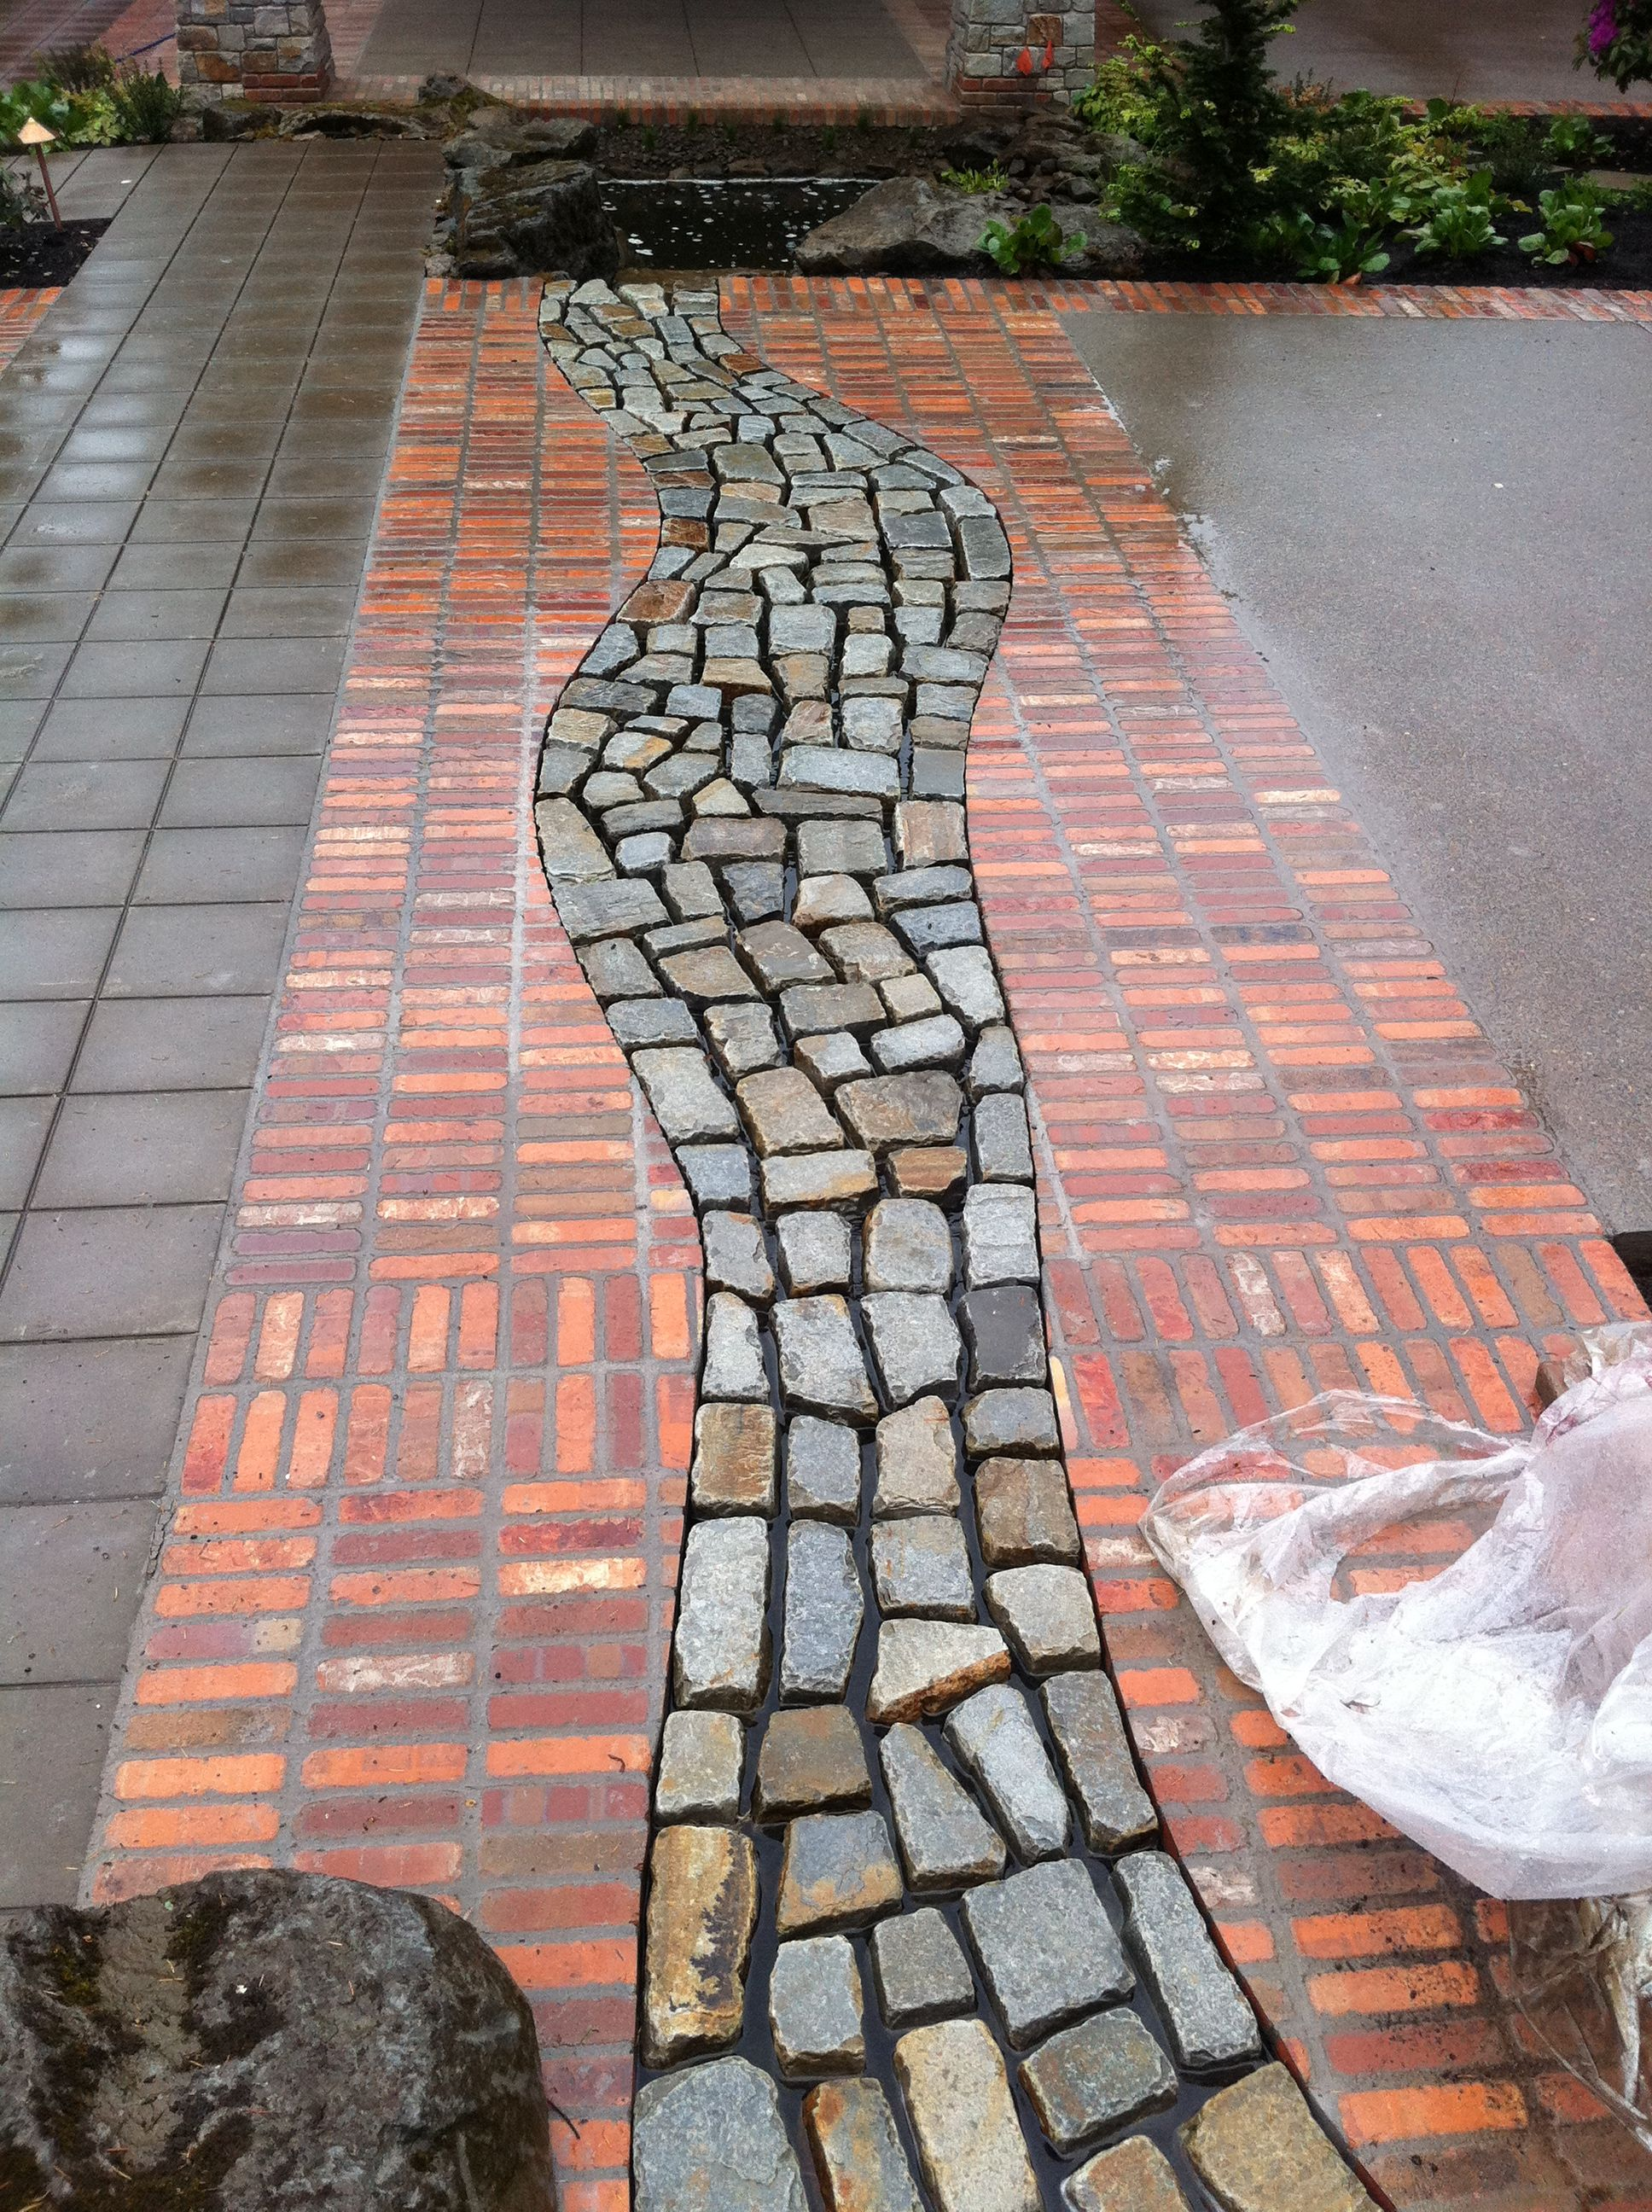 Pin by Mark on Water feature Water features, Masonry, Water